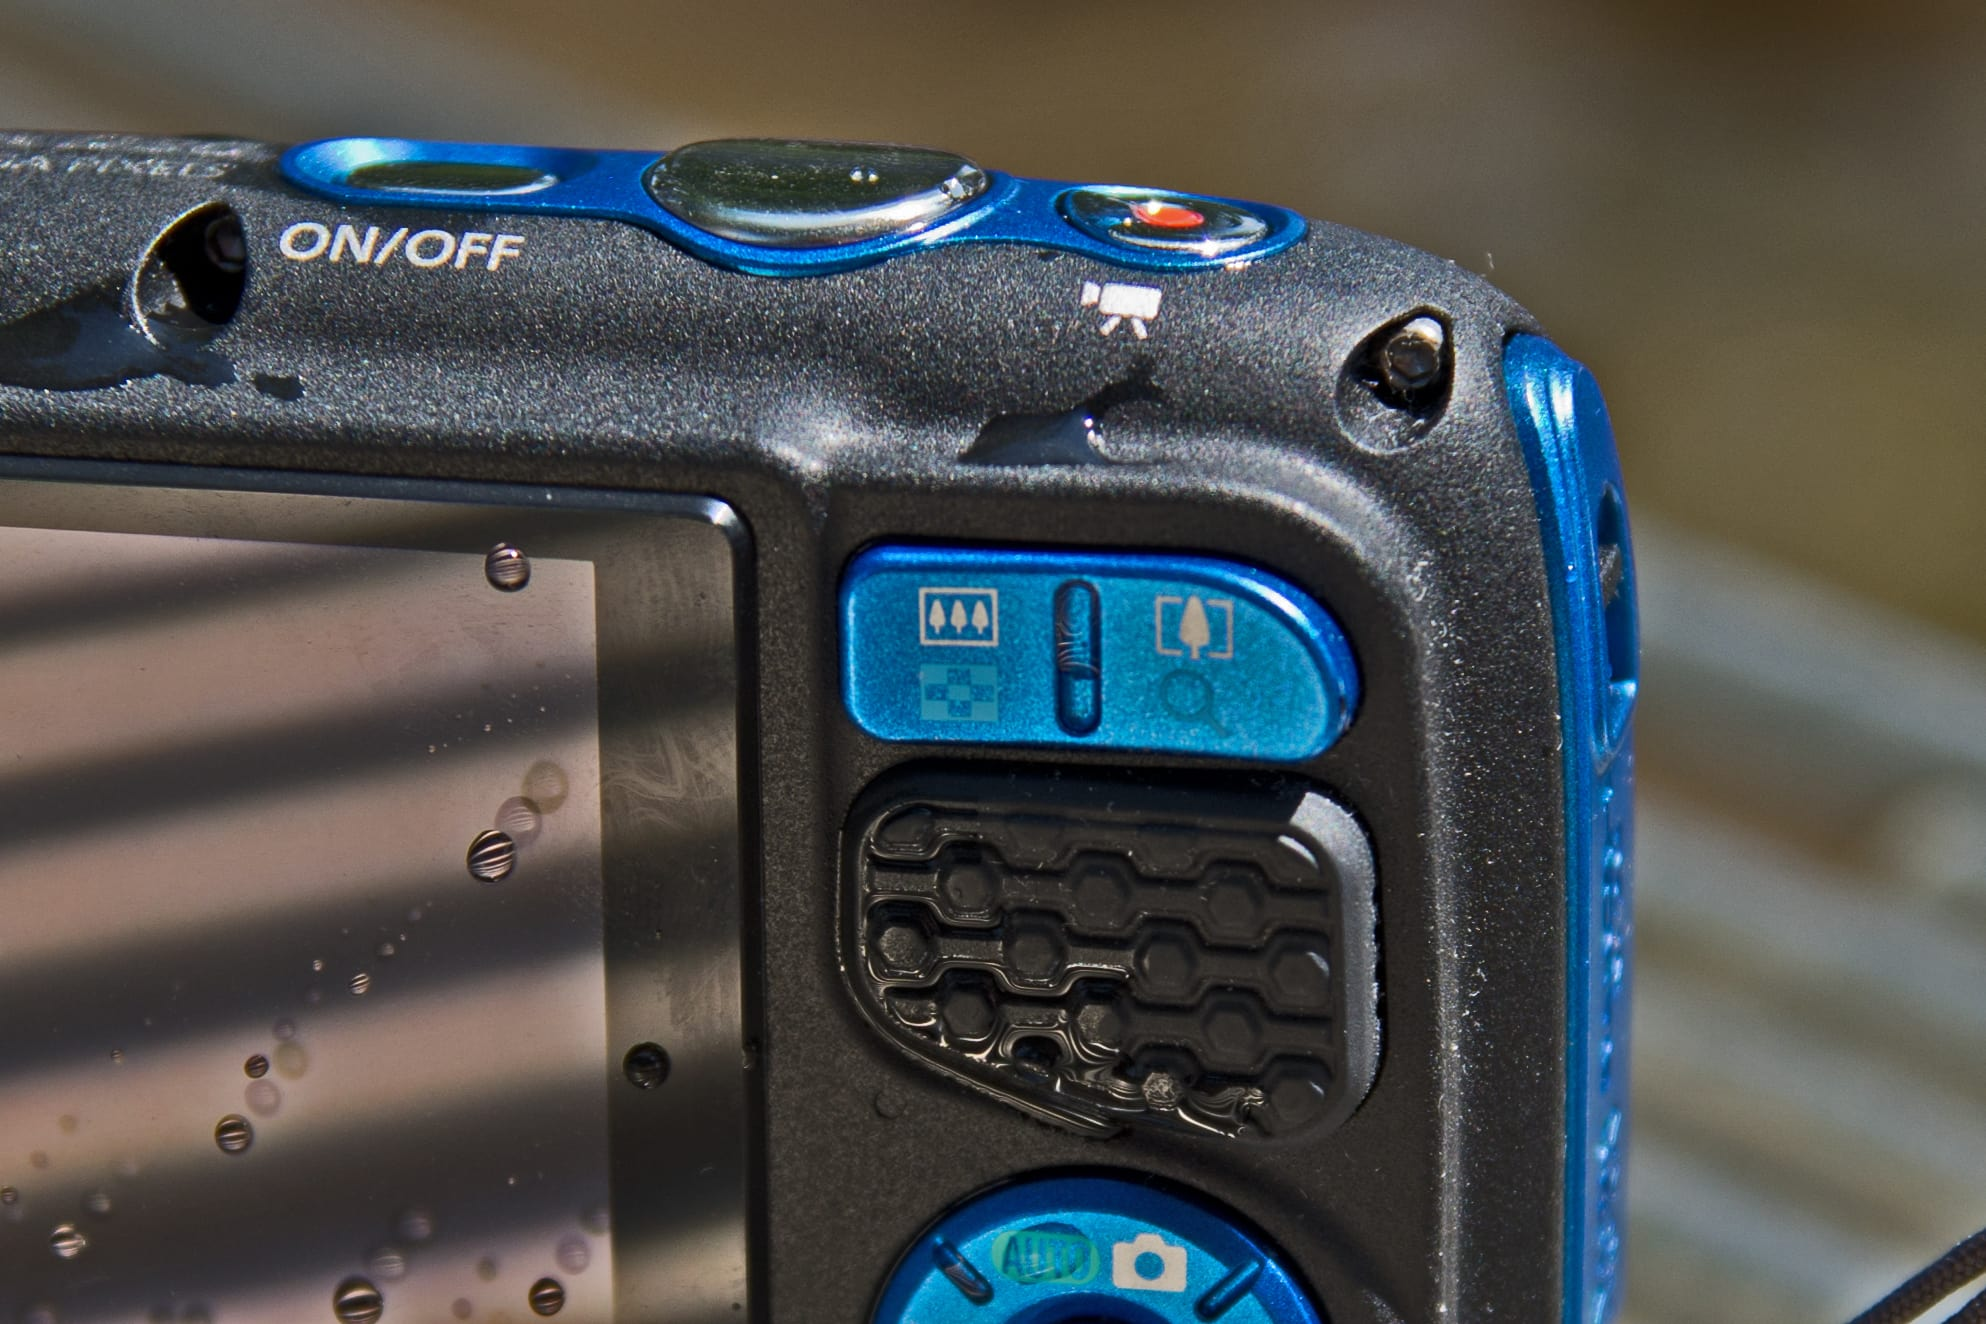 A picture of the Canon PowerShot D30's zoom controls.